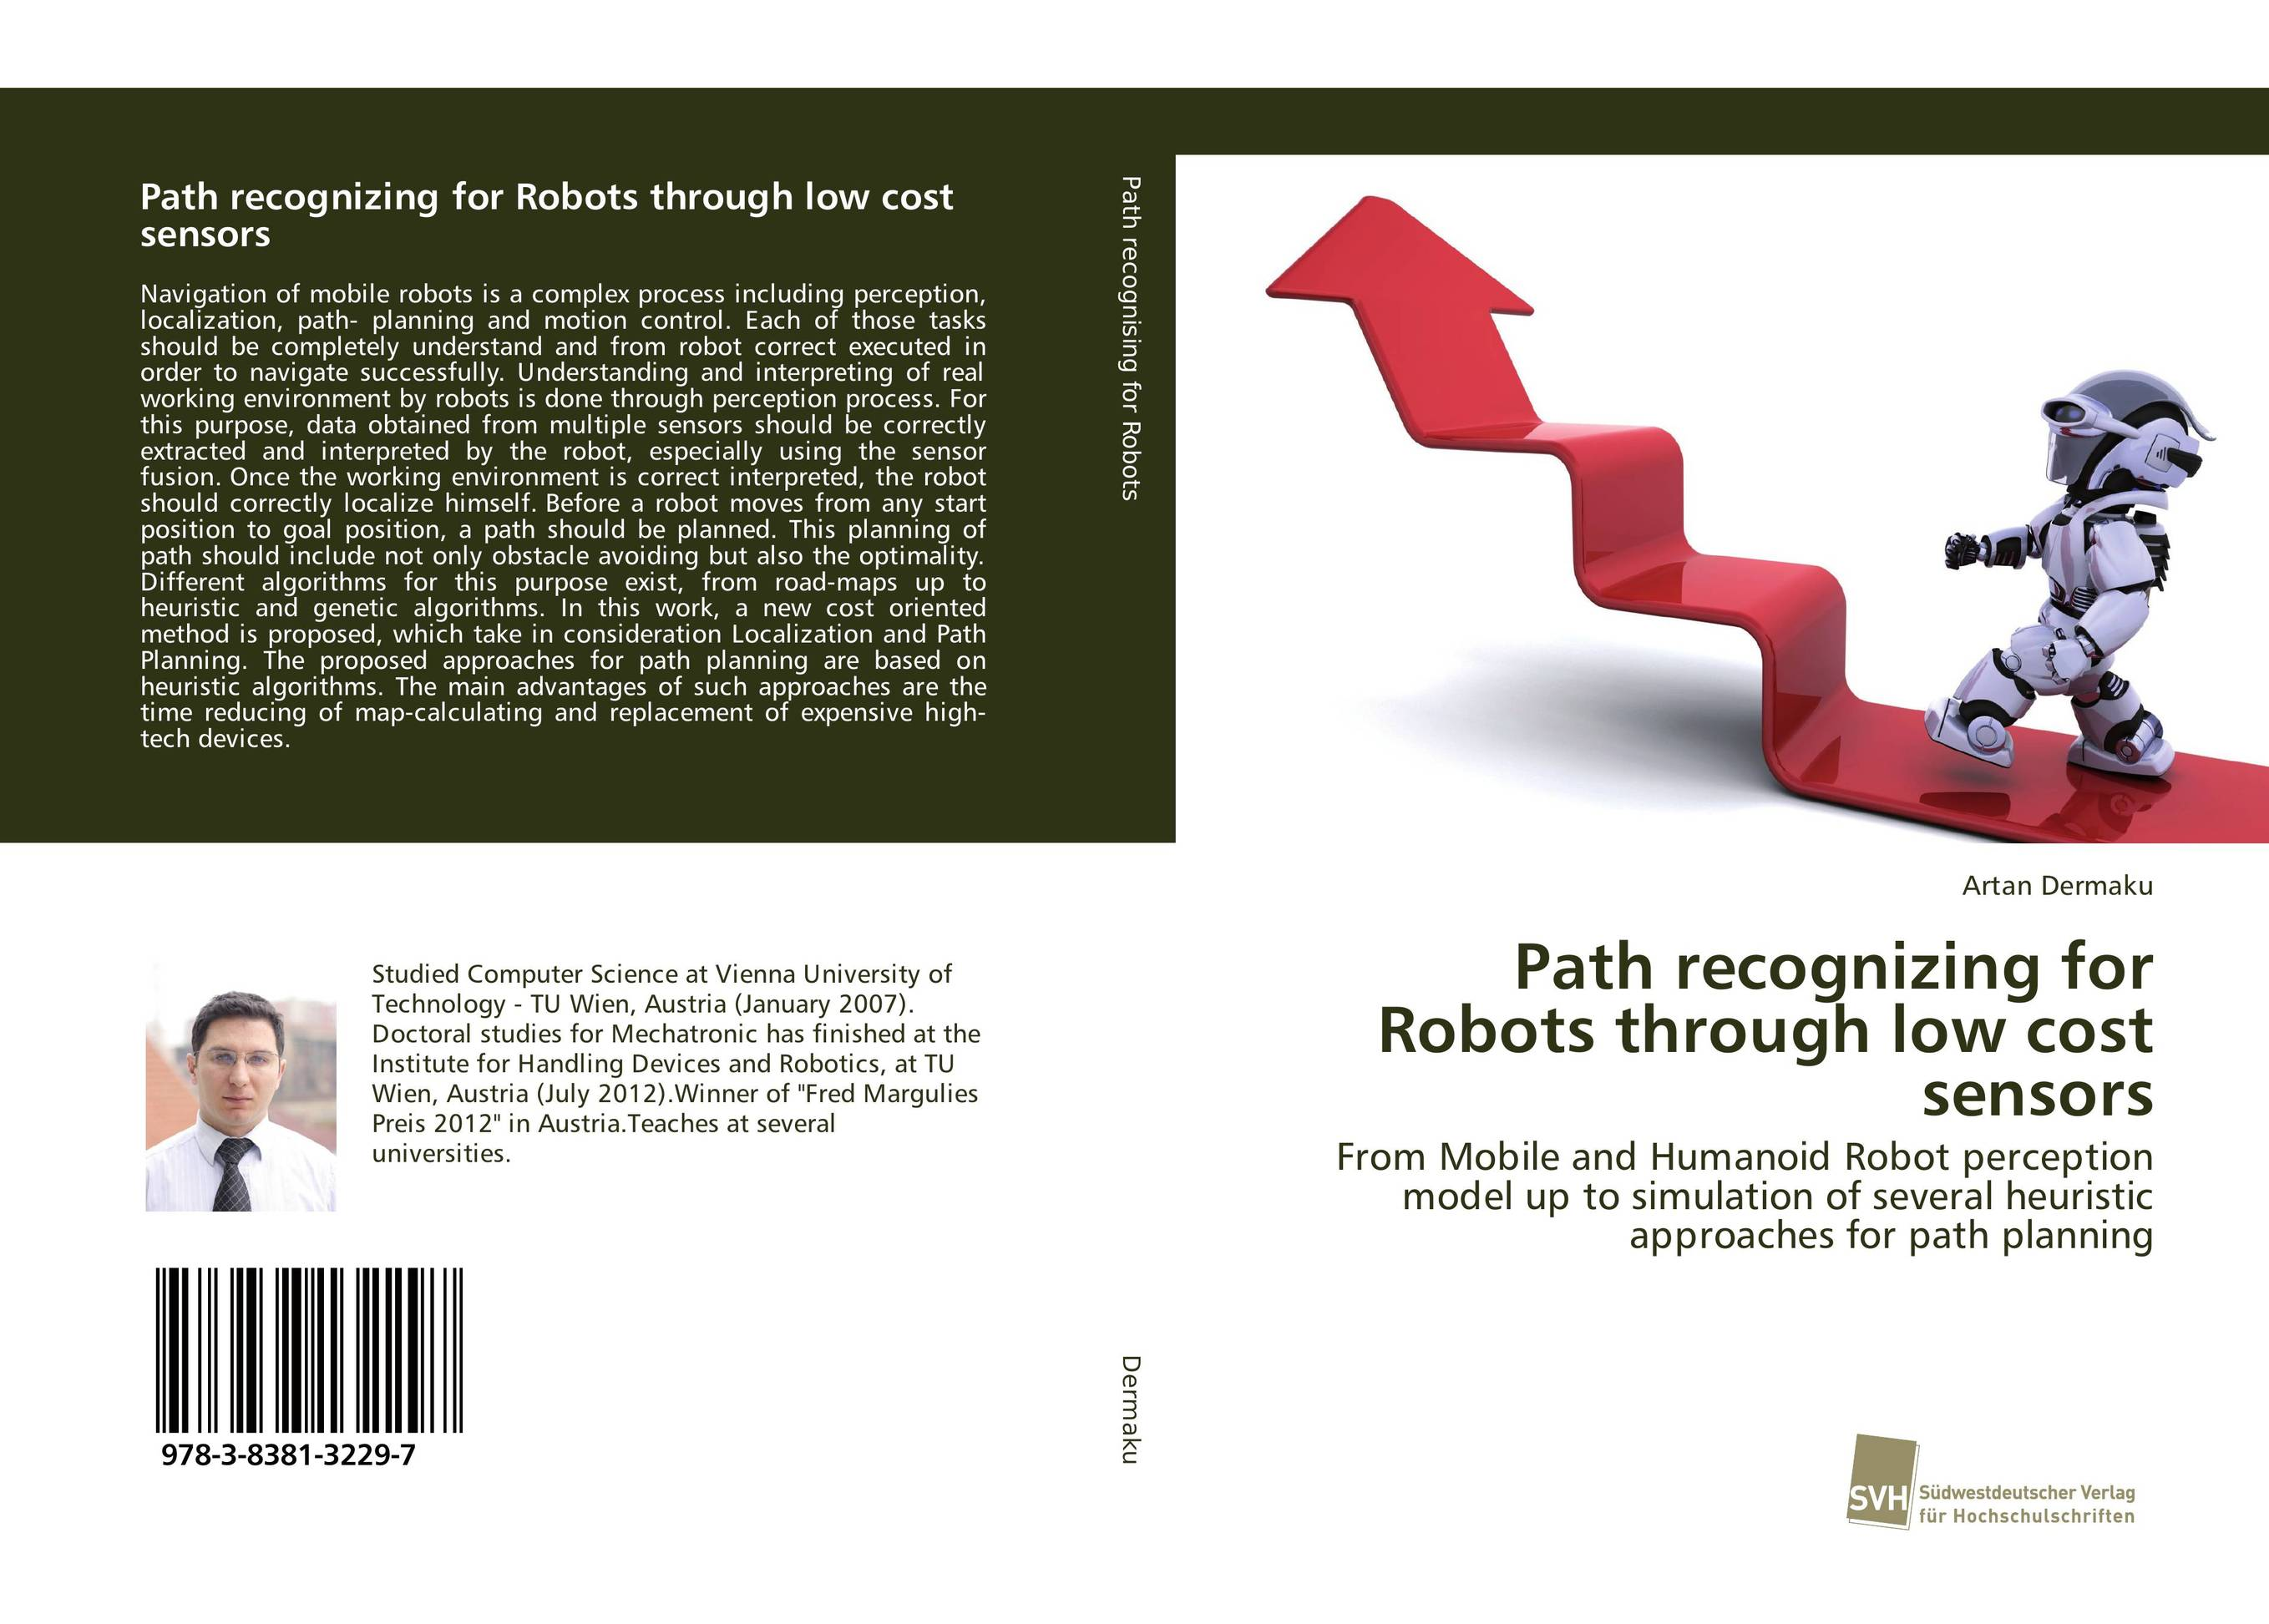 Path recognizing for Robots through low cost sensors mpso and mga approaches for mobile robot navigation